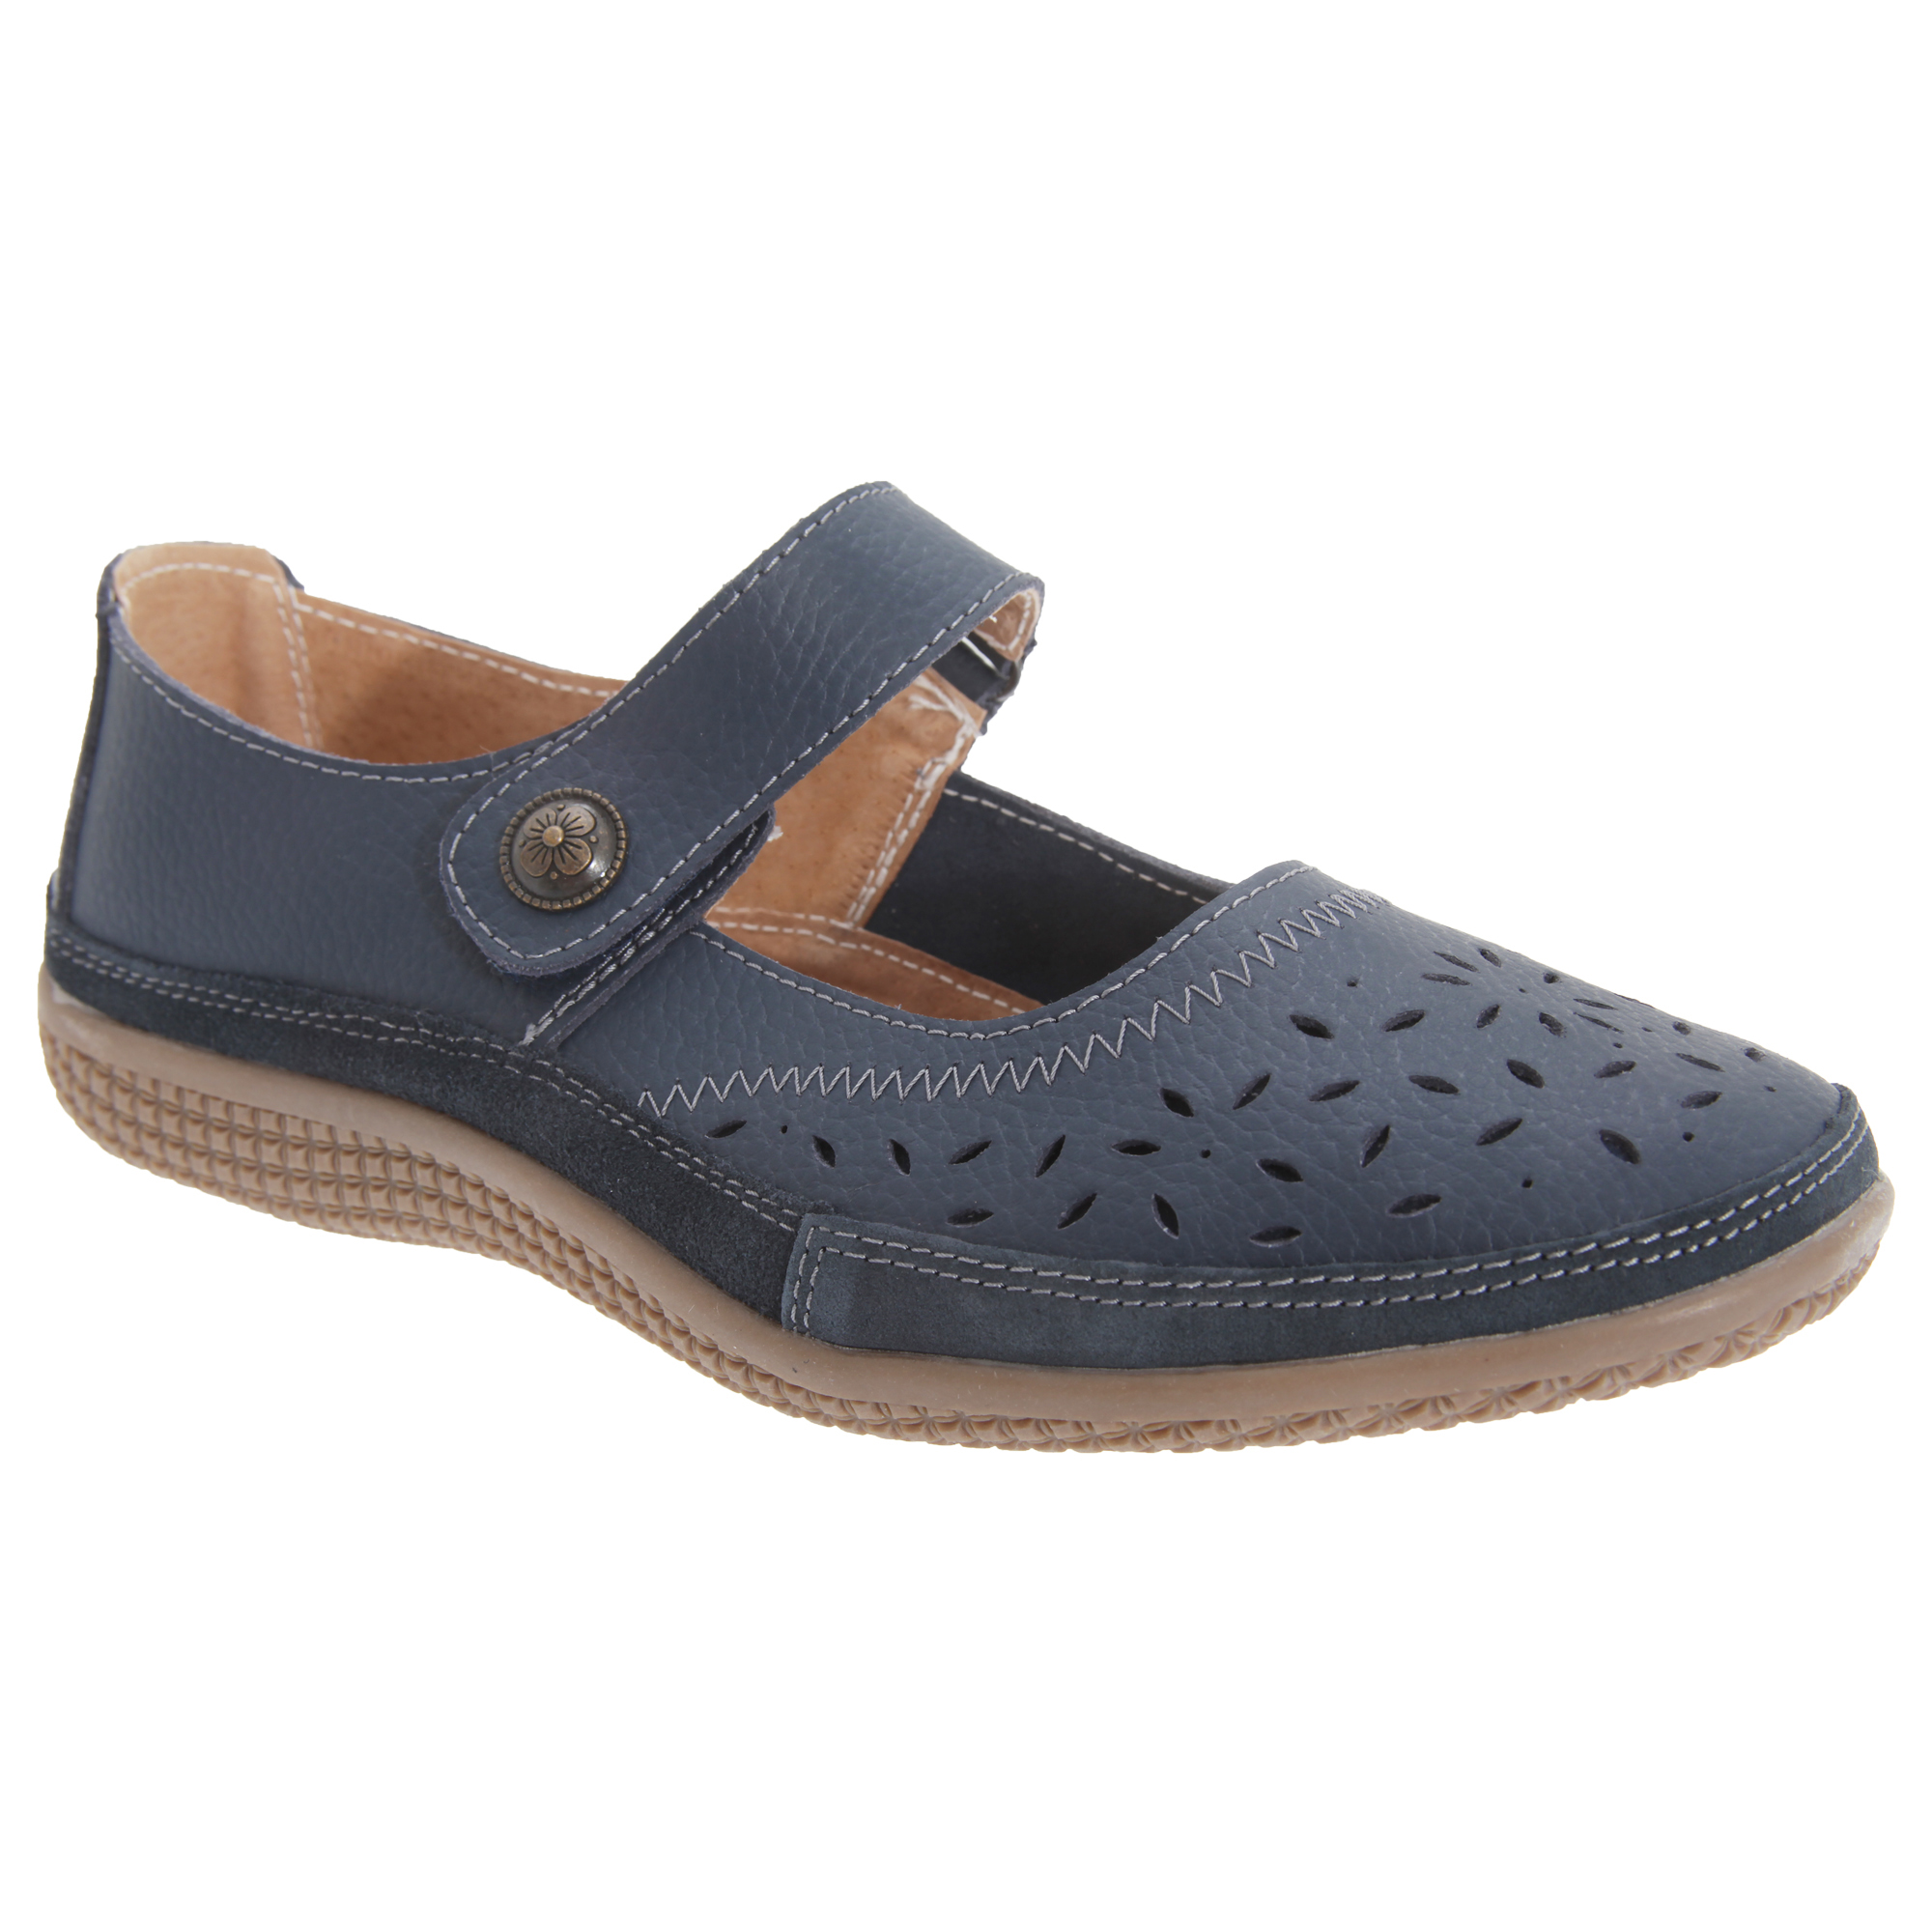 e87906060f1 Boulevard Womens ladies Wide Fitting Touch Fastening Bar Shoes flats  Utdf419 11 6 UK Navy. About this product. Picture 1 of 2  Picture 2 of 2